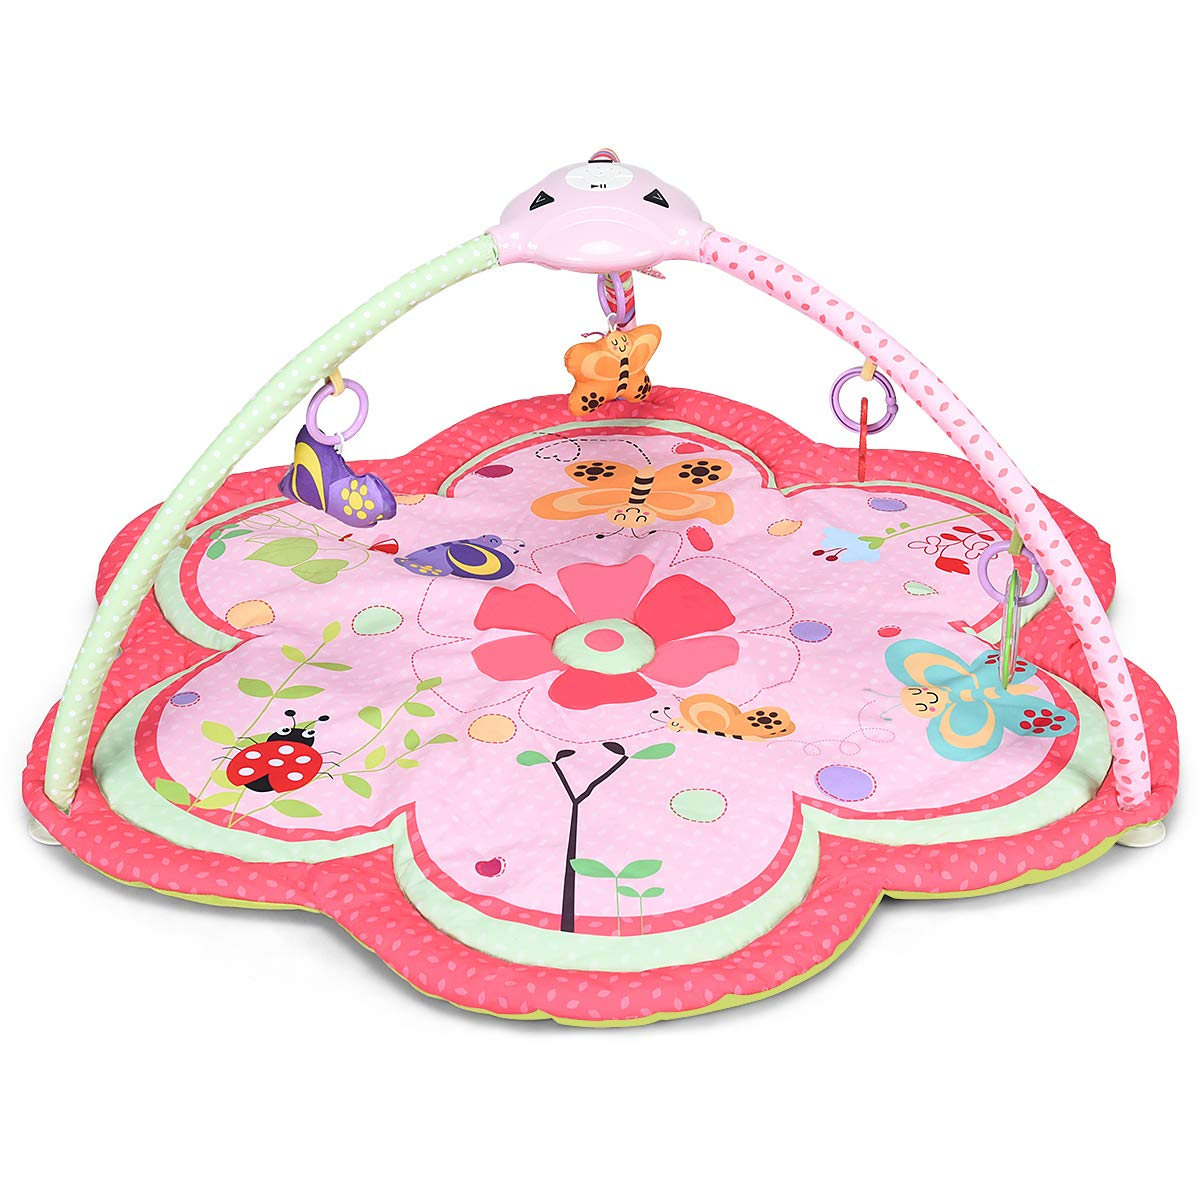 BABY JOY Baby 5-in-1 Nature Exploration Activity Gym Play Mat, Infants Crawling Mat with Music LED Light, 5 Hanging Educational Toys, Exercise Baby s Limbs Explore Hearing Ability Pink